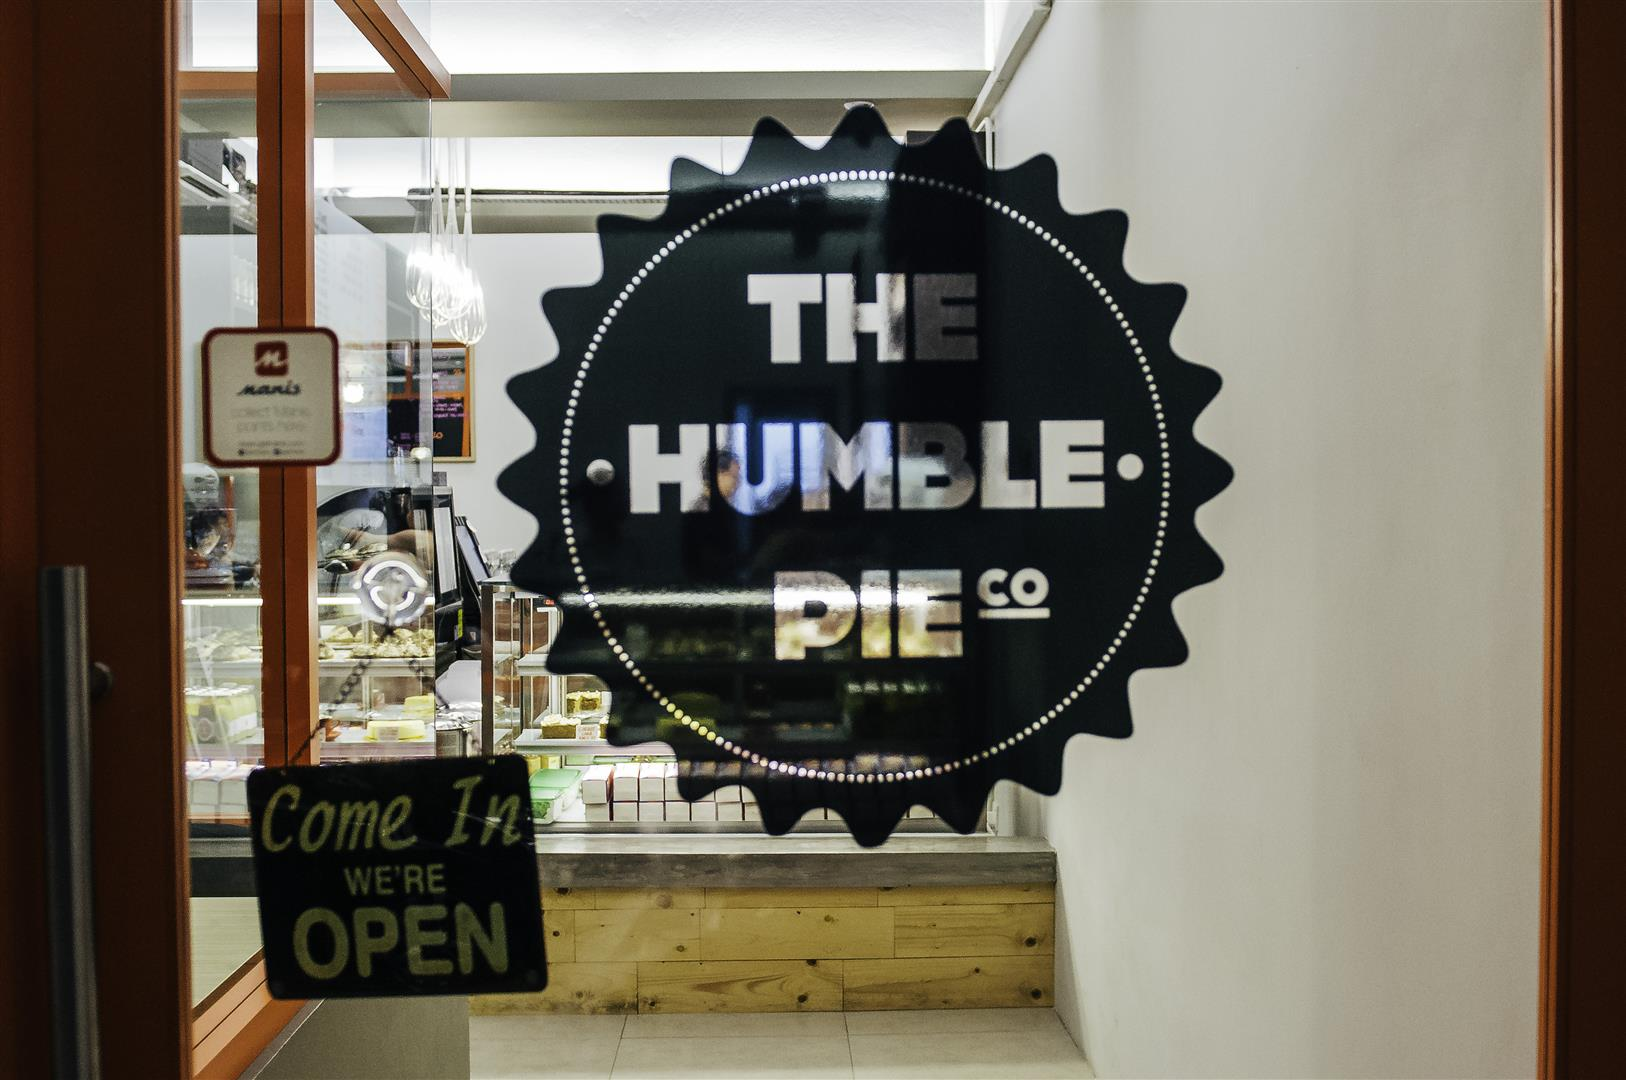 source: The Humble Pie